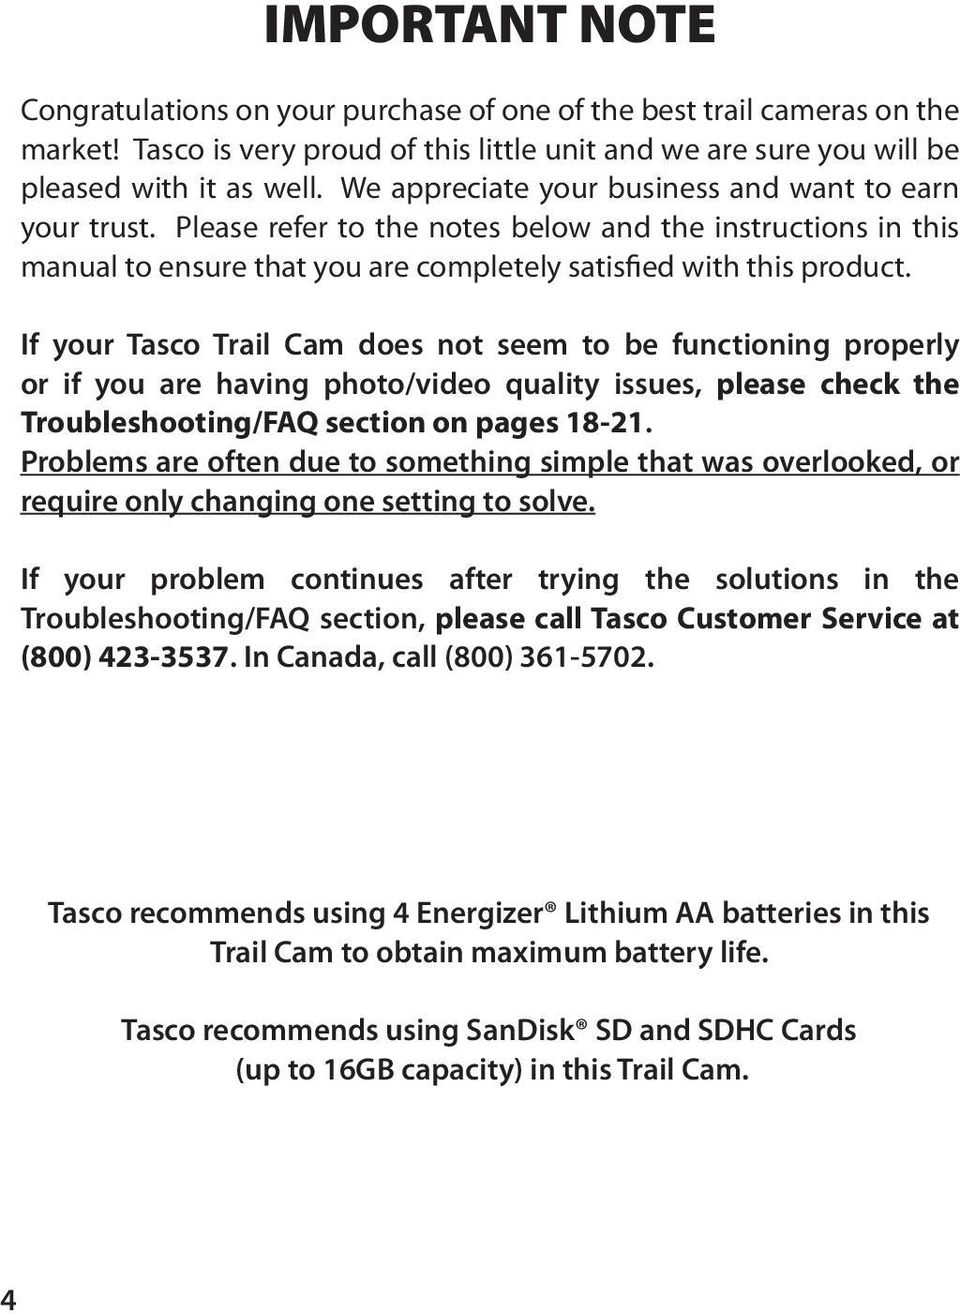 If your Tasco Trail Cam does not seem to be functioning properly or if you are having photo/video quality issues, please check the Troubleshooting/FAQ section on pages 18-21.